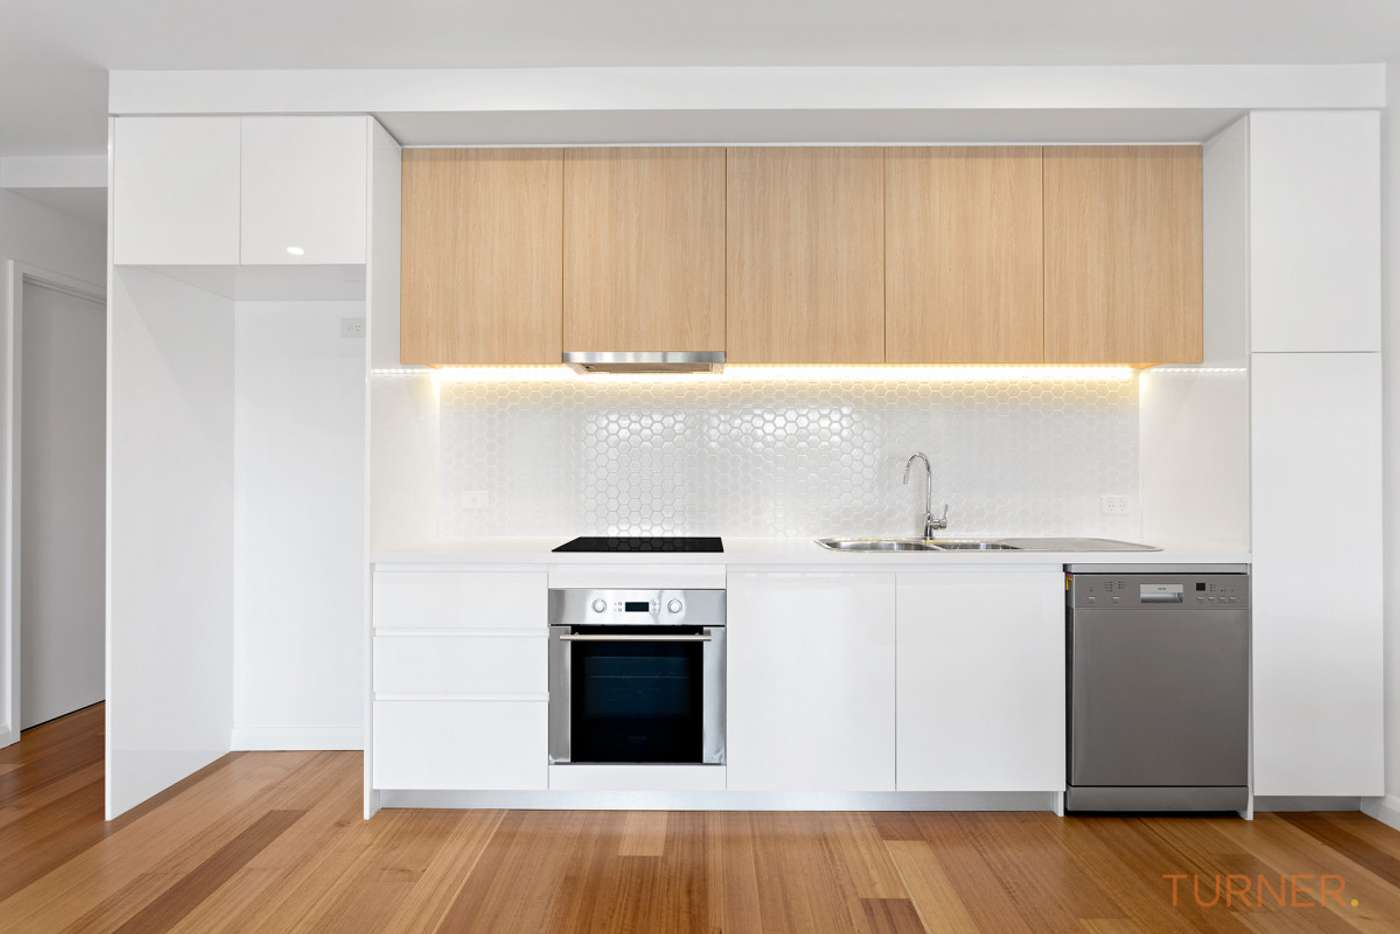 Main view of Homely apartment listing, 214/3 Fourth Street, Bowden SA 5007